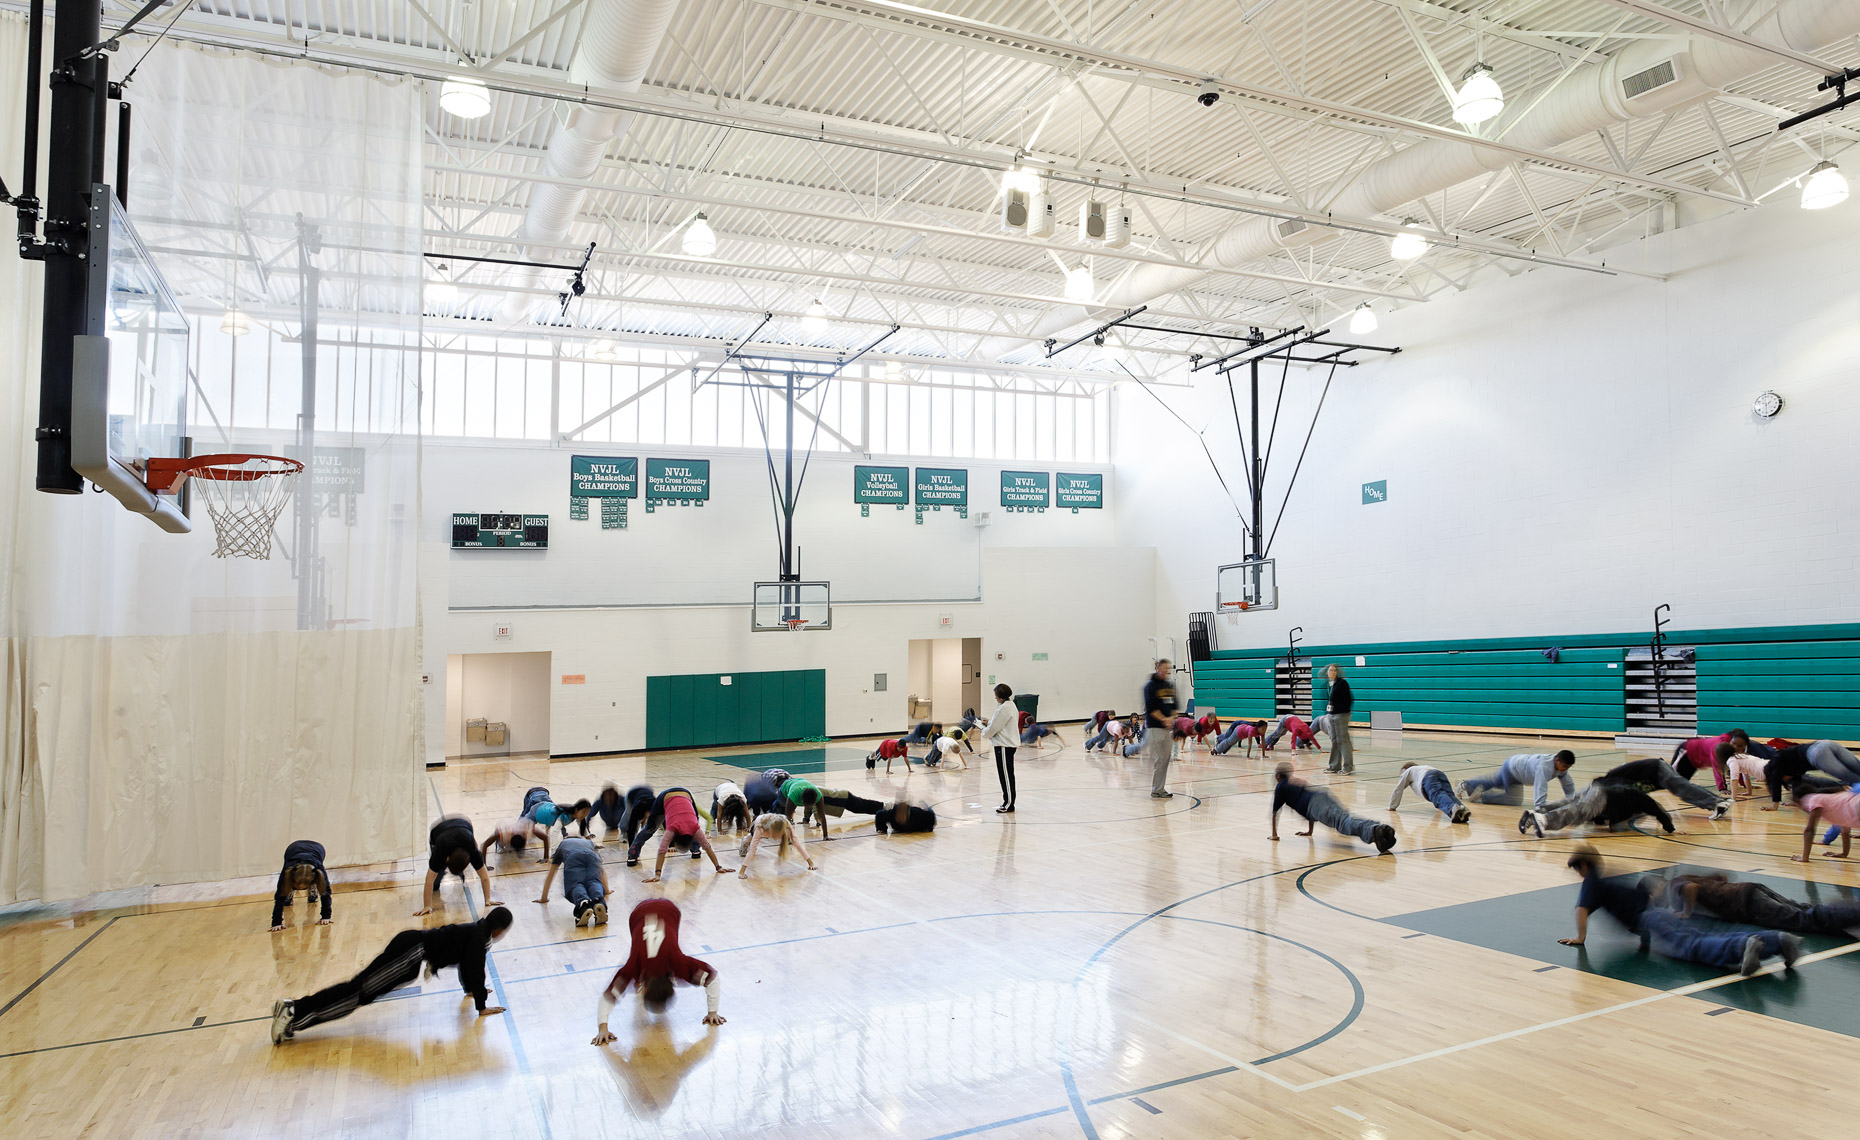 Virginia Hamrick Photography - Elementary School Gymnasium -Education